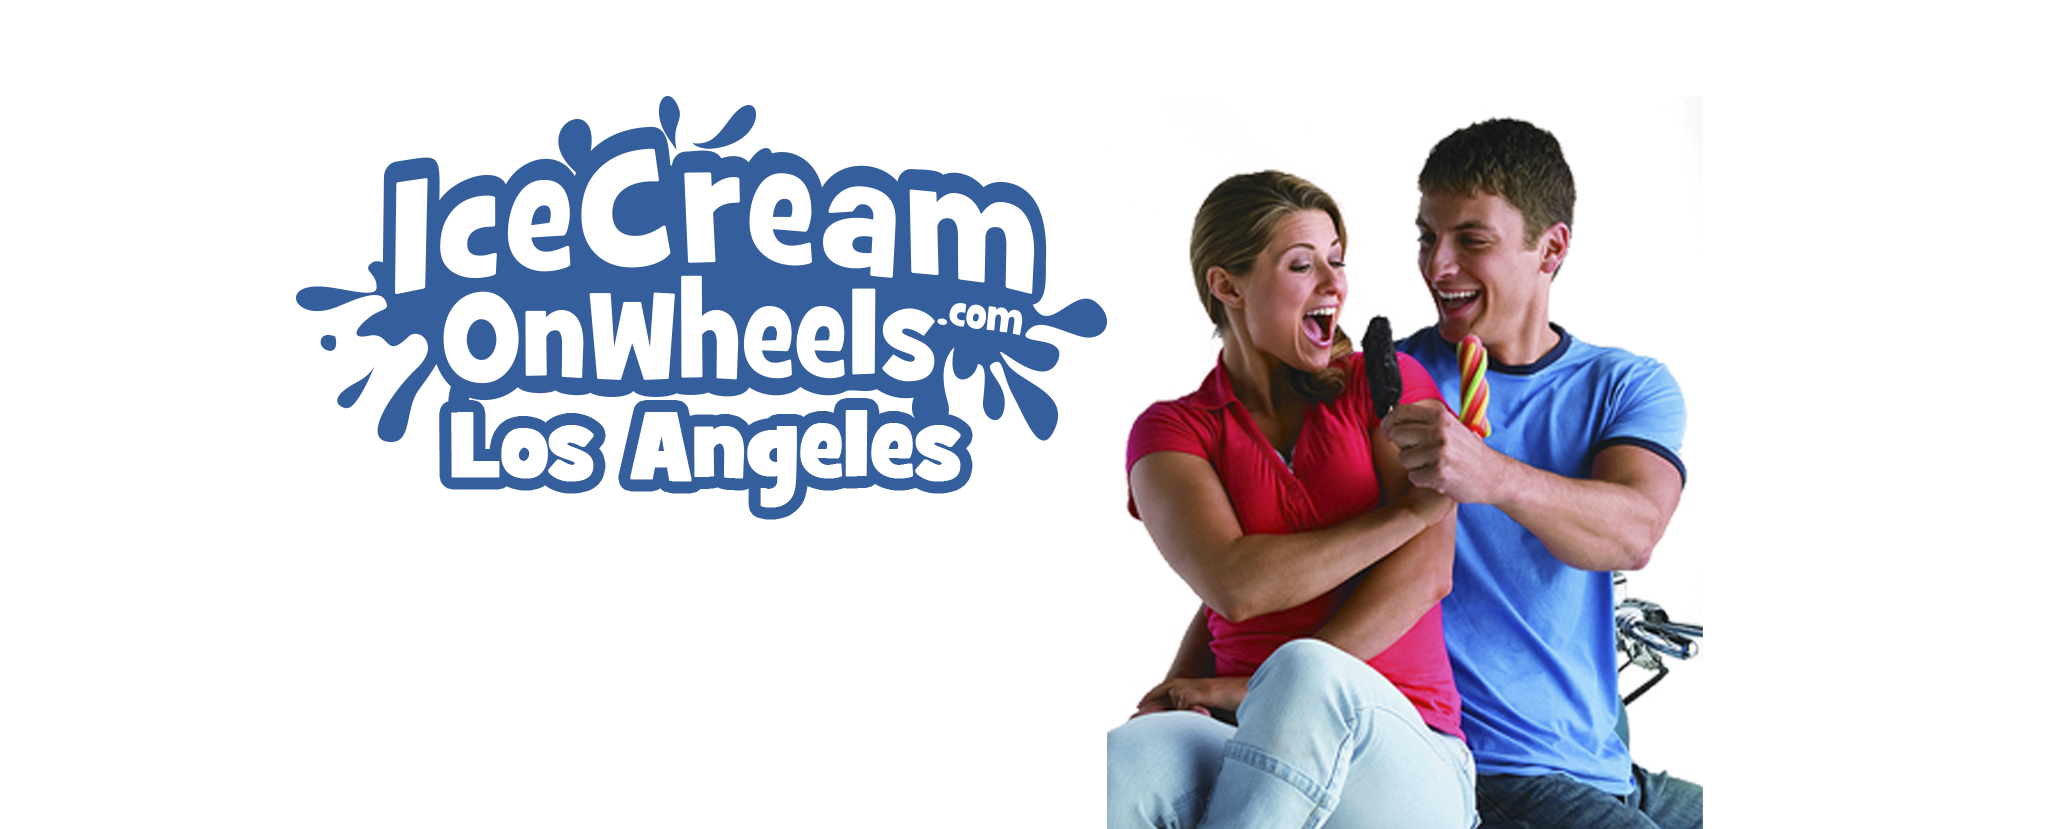 Entertainment Events Ice Cream Vendors San Bernardino County